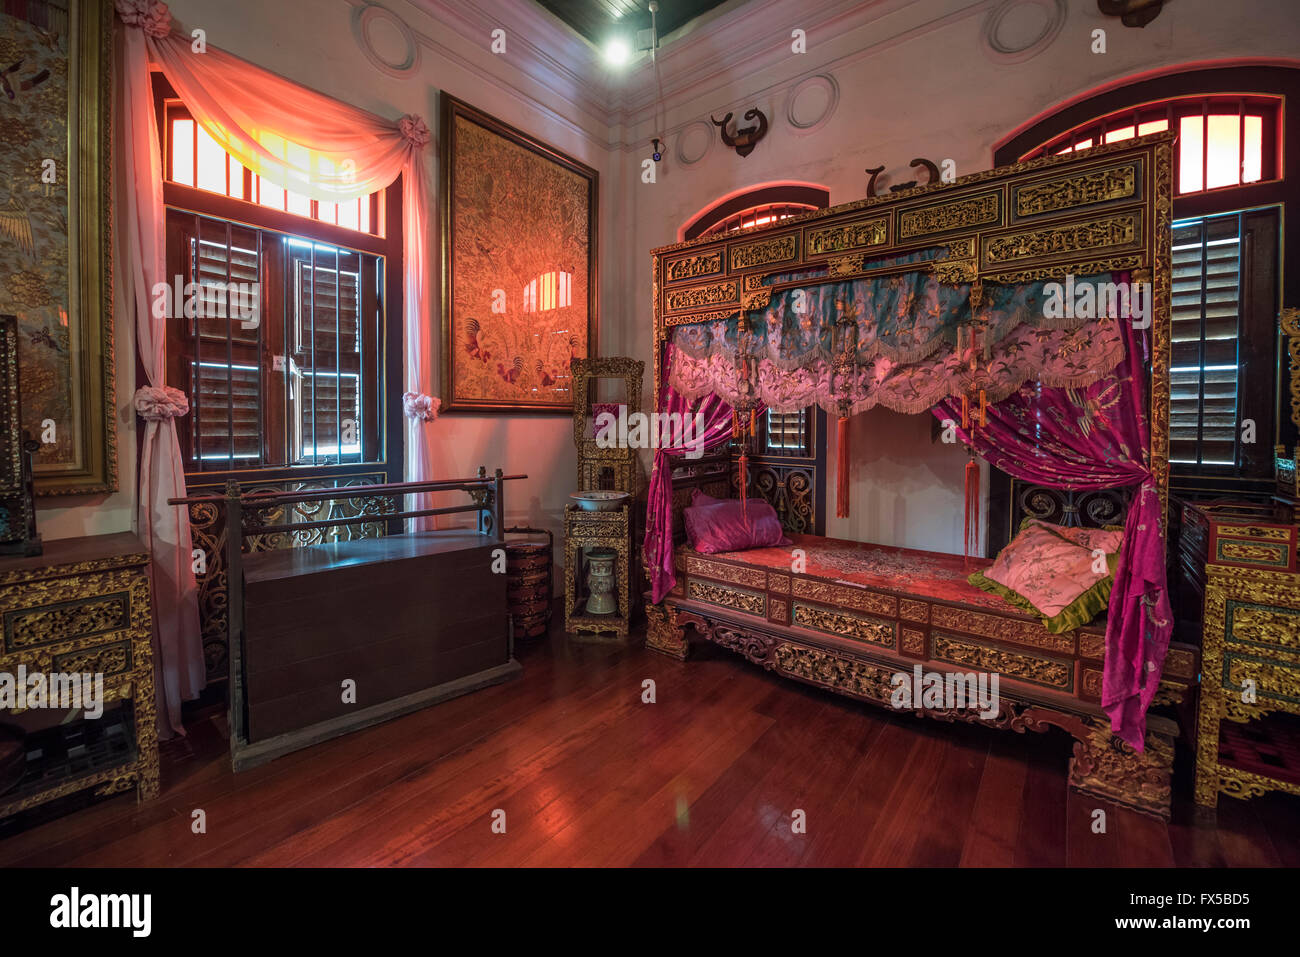 Bedroom in the Peranakan Mansion, George Town, Penang - Stock Image